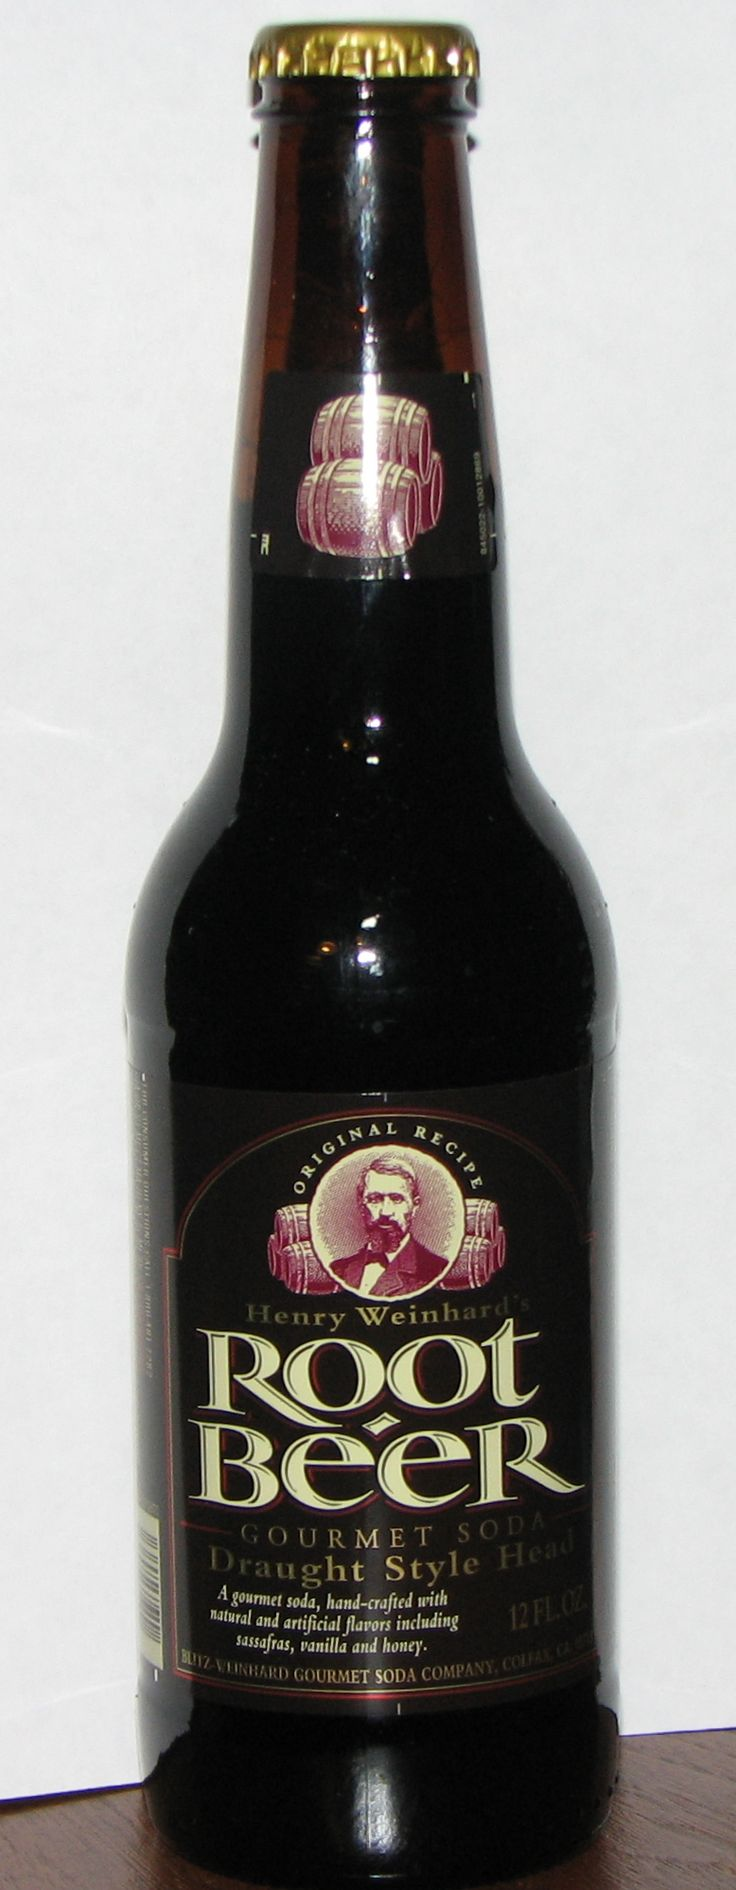 Henry Weinhard's Root Beer. Made in Colfax, CA. Purchased